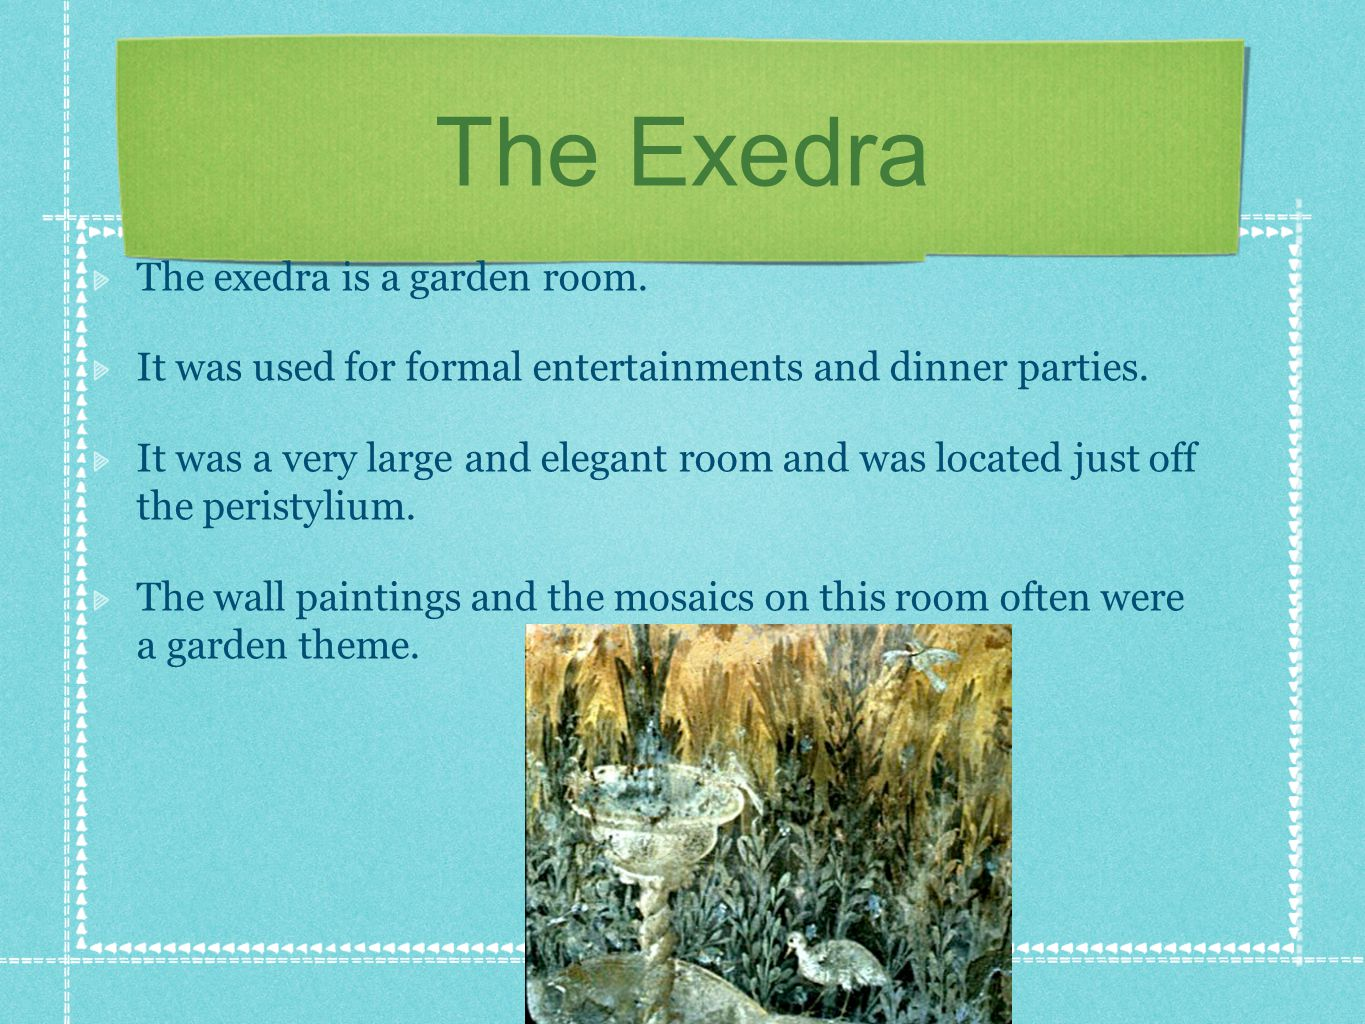 The Exedra The exedra is a garden room.